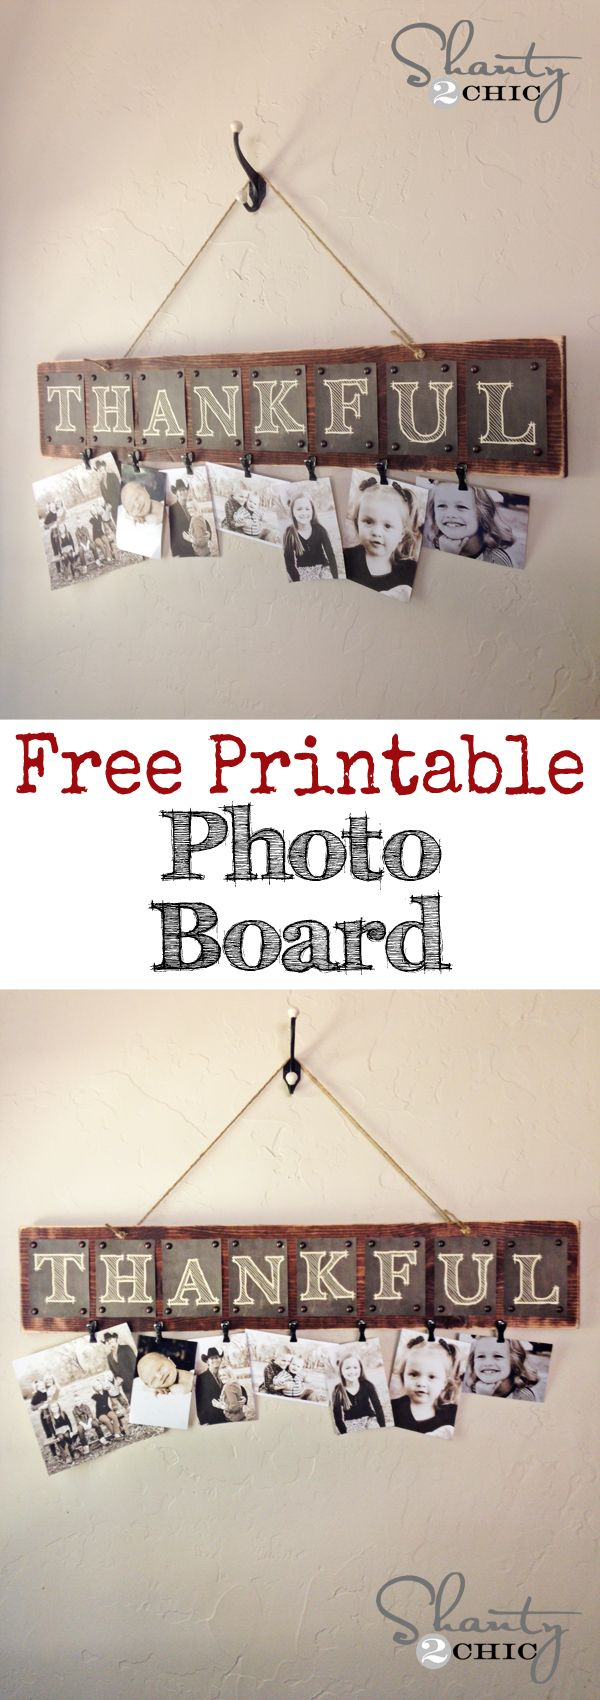 DIY Thankful Photo Board with FREE Printable letters... So sweet! LOVE it! Fun gift idea too I'm thinking these would make awesome christmas gifts--cute and super cheap!!